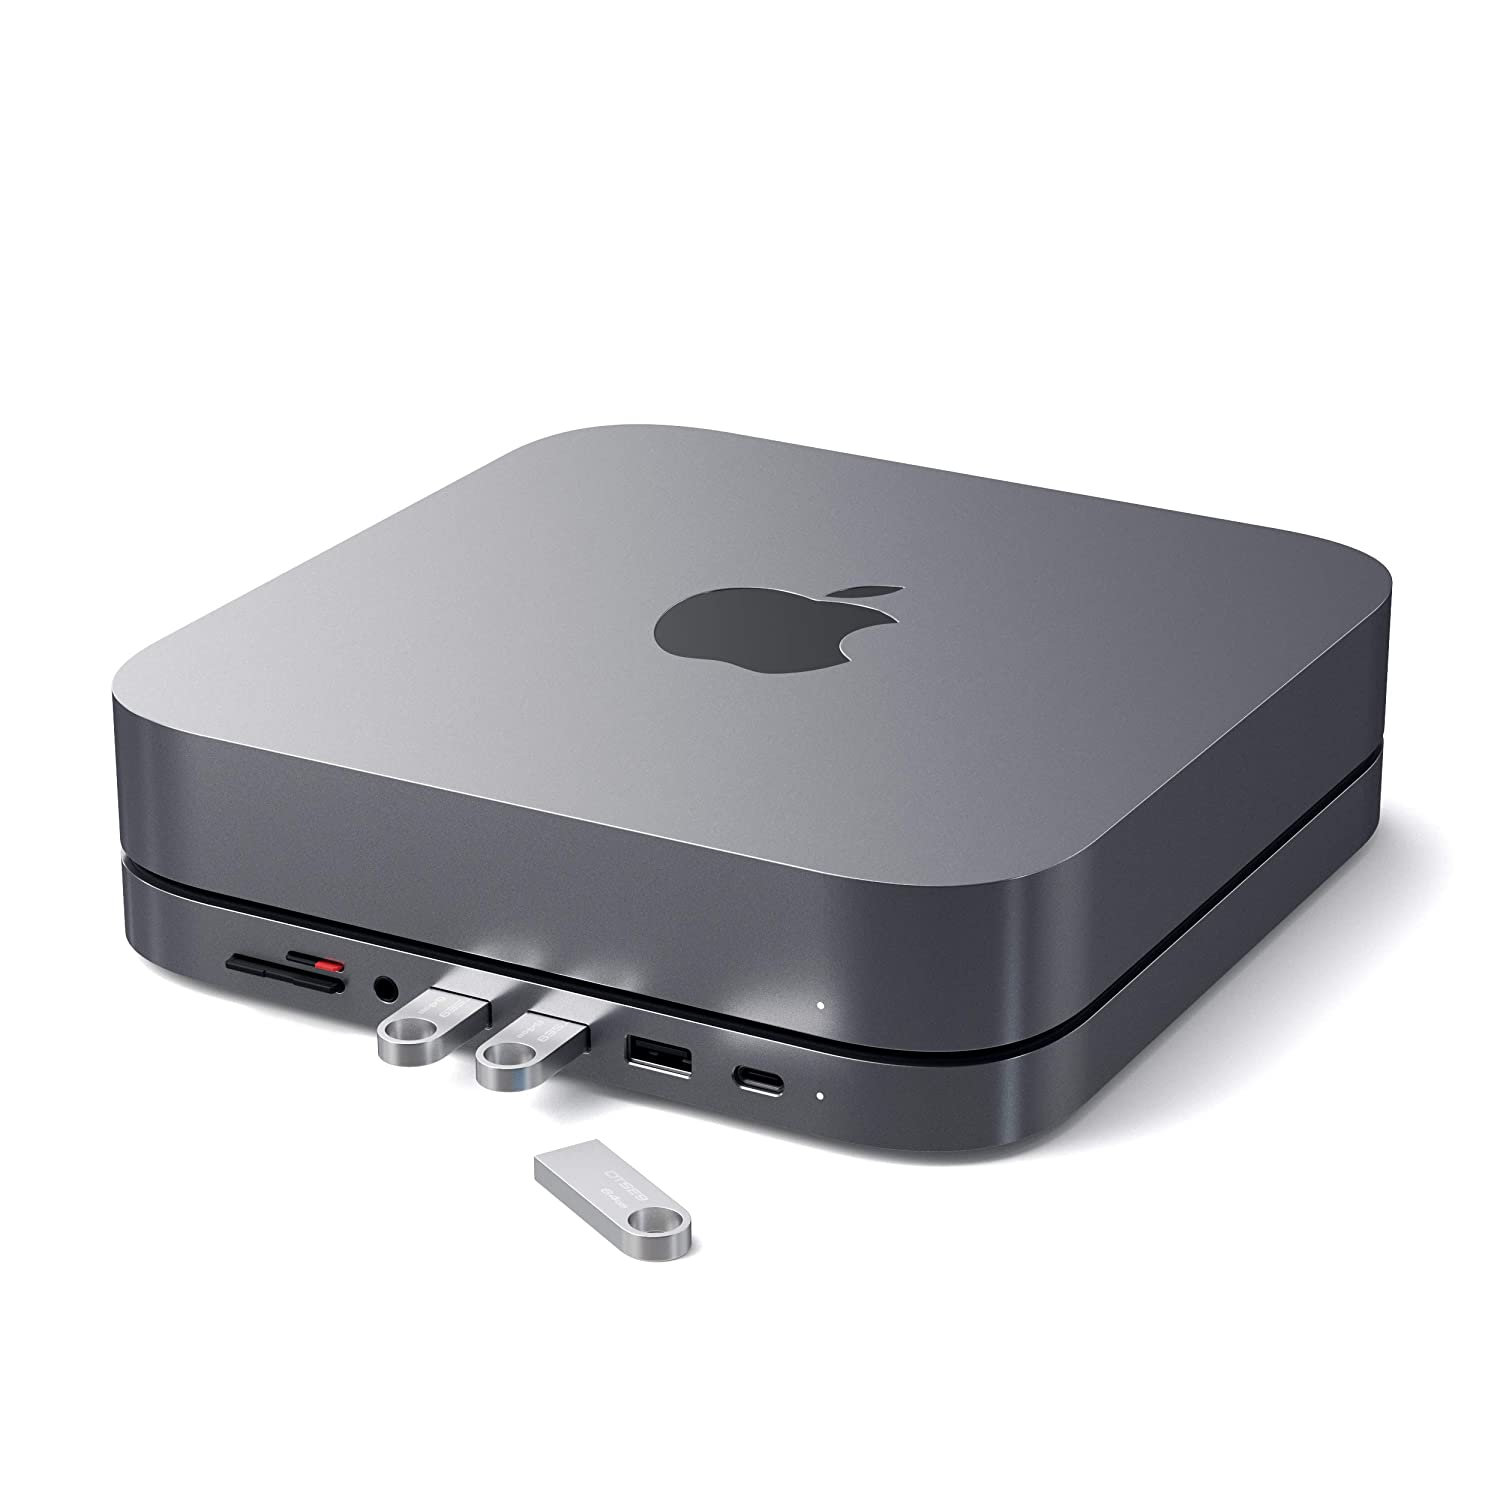 Satechi Type-C Aluminum Stand & Hub - USB-C Data Port, Micro/SD Card Readers, USB 3.0 & Headphone Jack Port - Compatible with Mac Mini (2018 & Later)